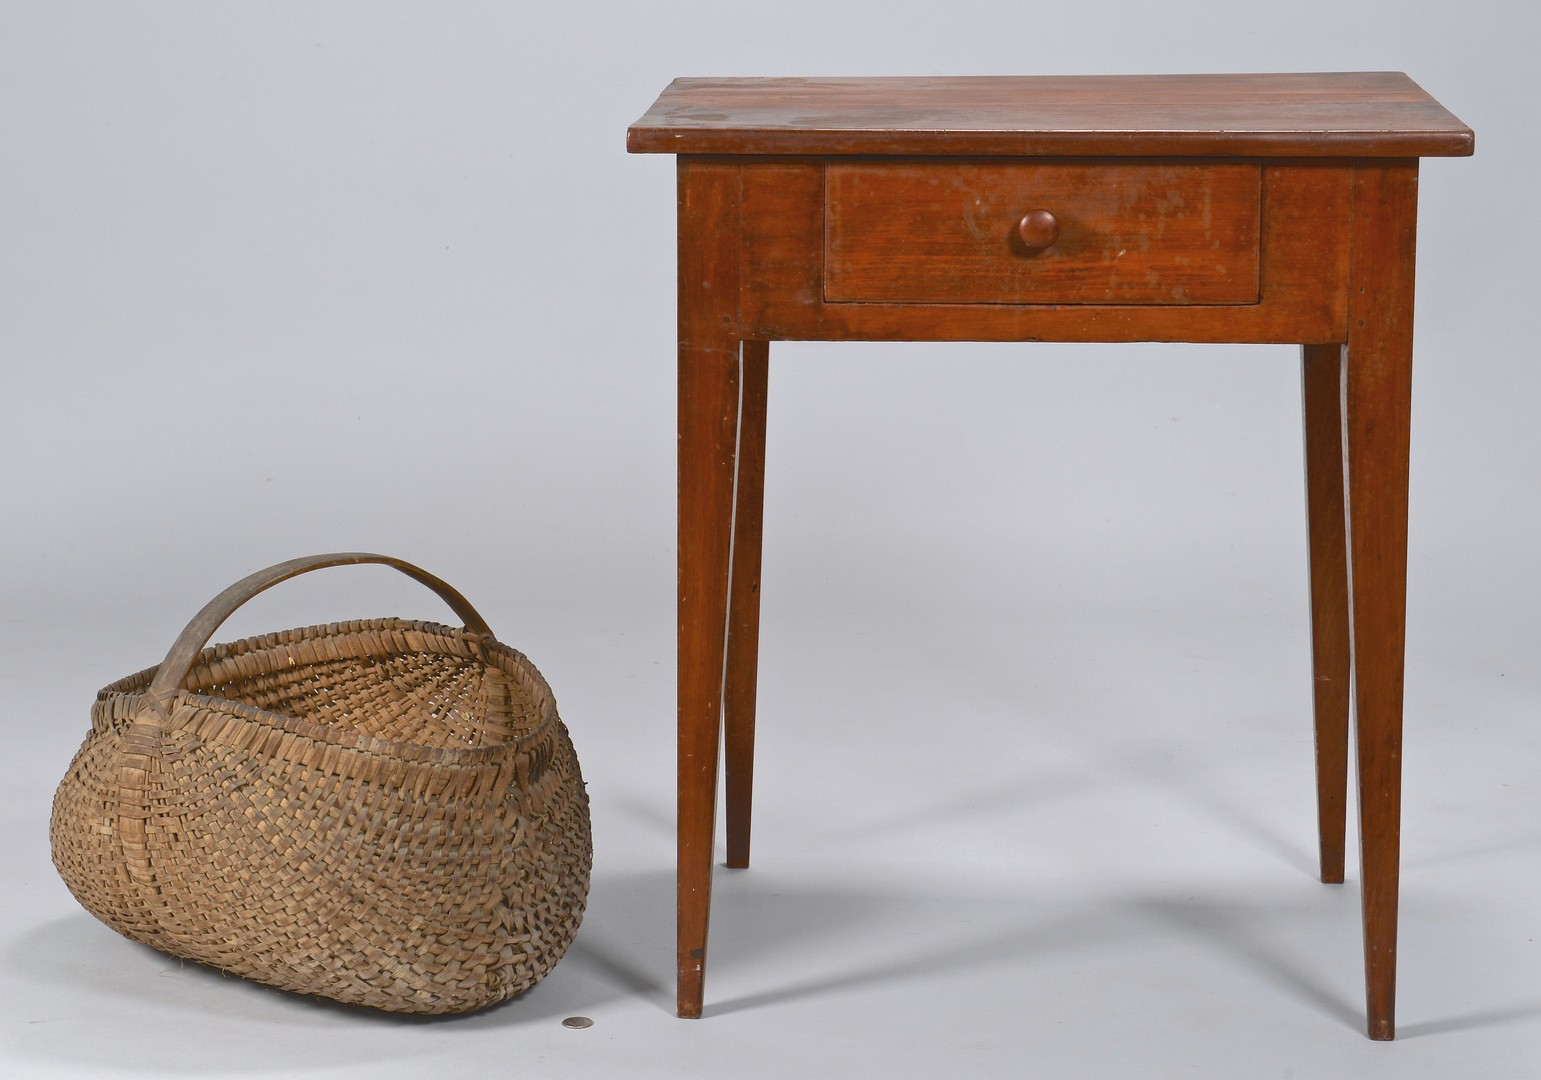 Lot 165: East TN Hepplewhite One-Drawer Table & Basket